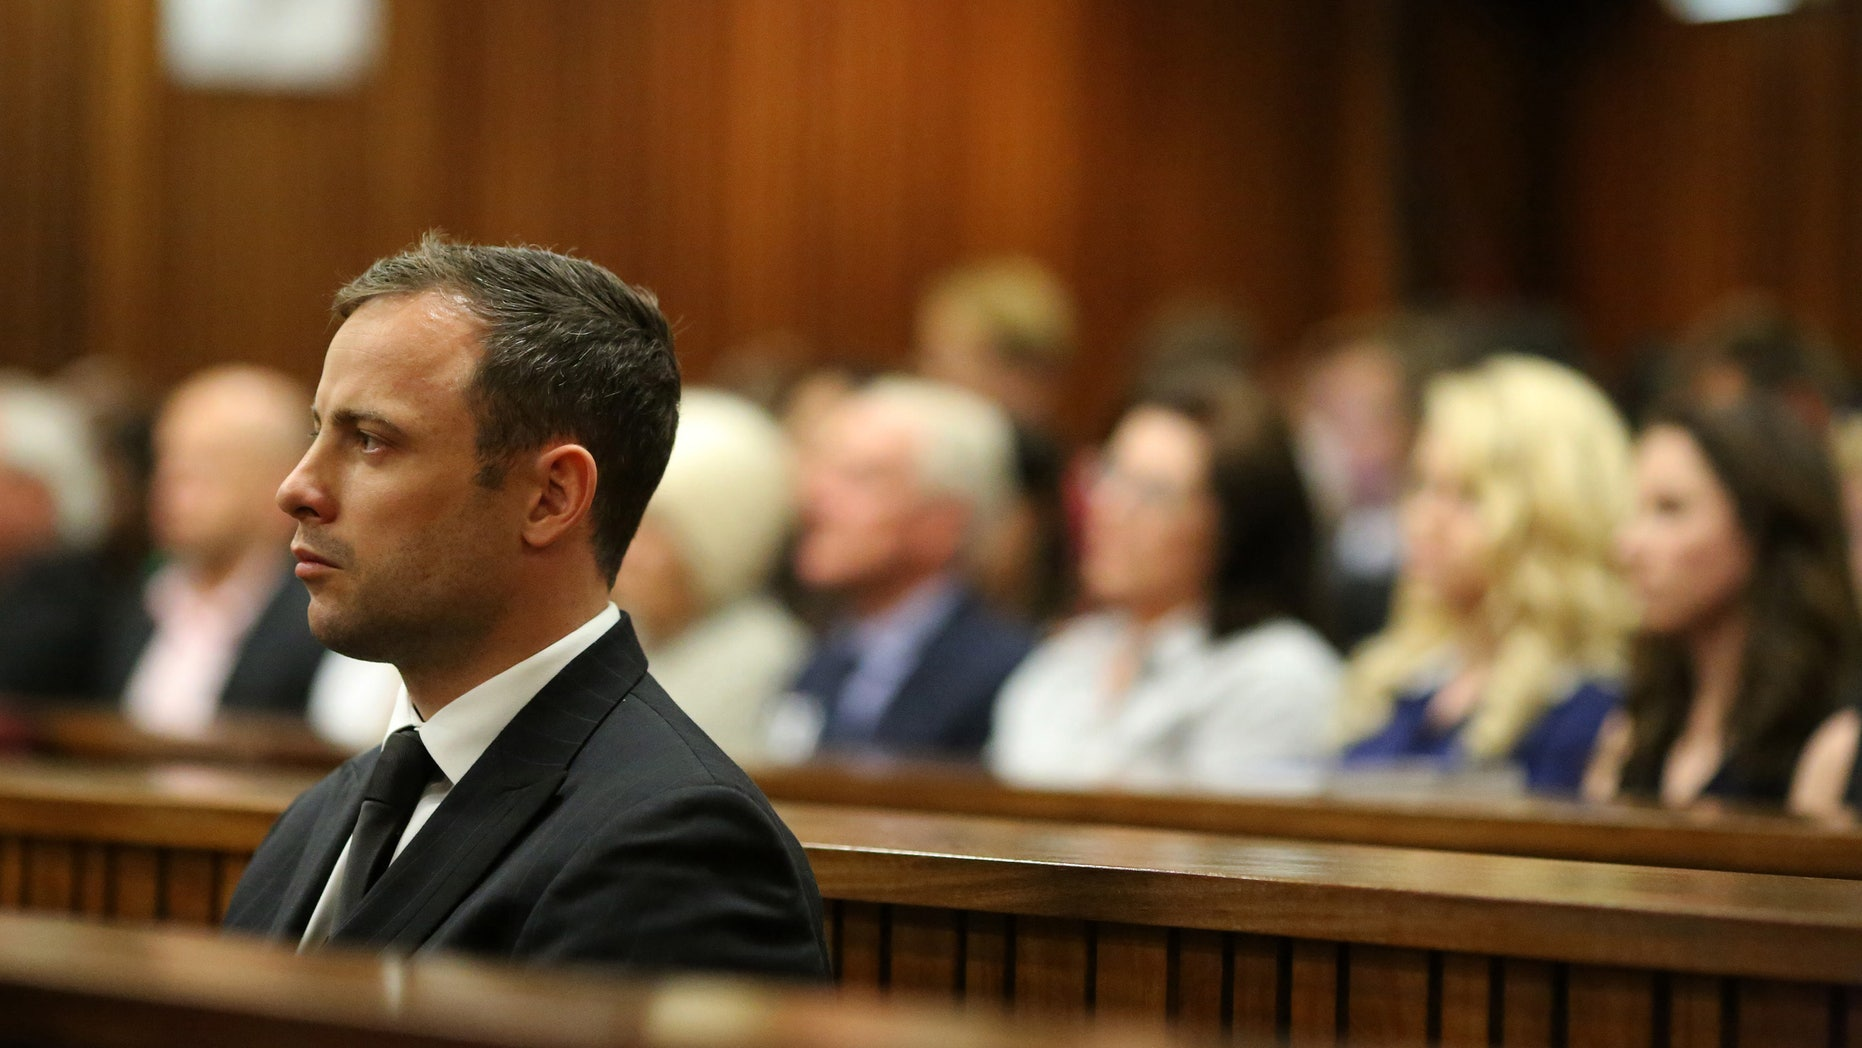 Sept. 12, 2014 - Oscar Pistorius in court in Pretoria, South Africa. Pistorius, who will be sentenced next month after being found guilty in the negligent killing of his girlfriend, could compete at any time. The South African Olympic committee has no regulations preventing someone with a criminal record from representing the country.